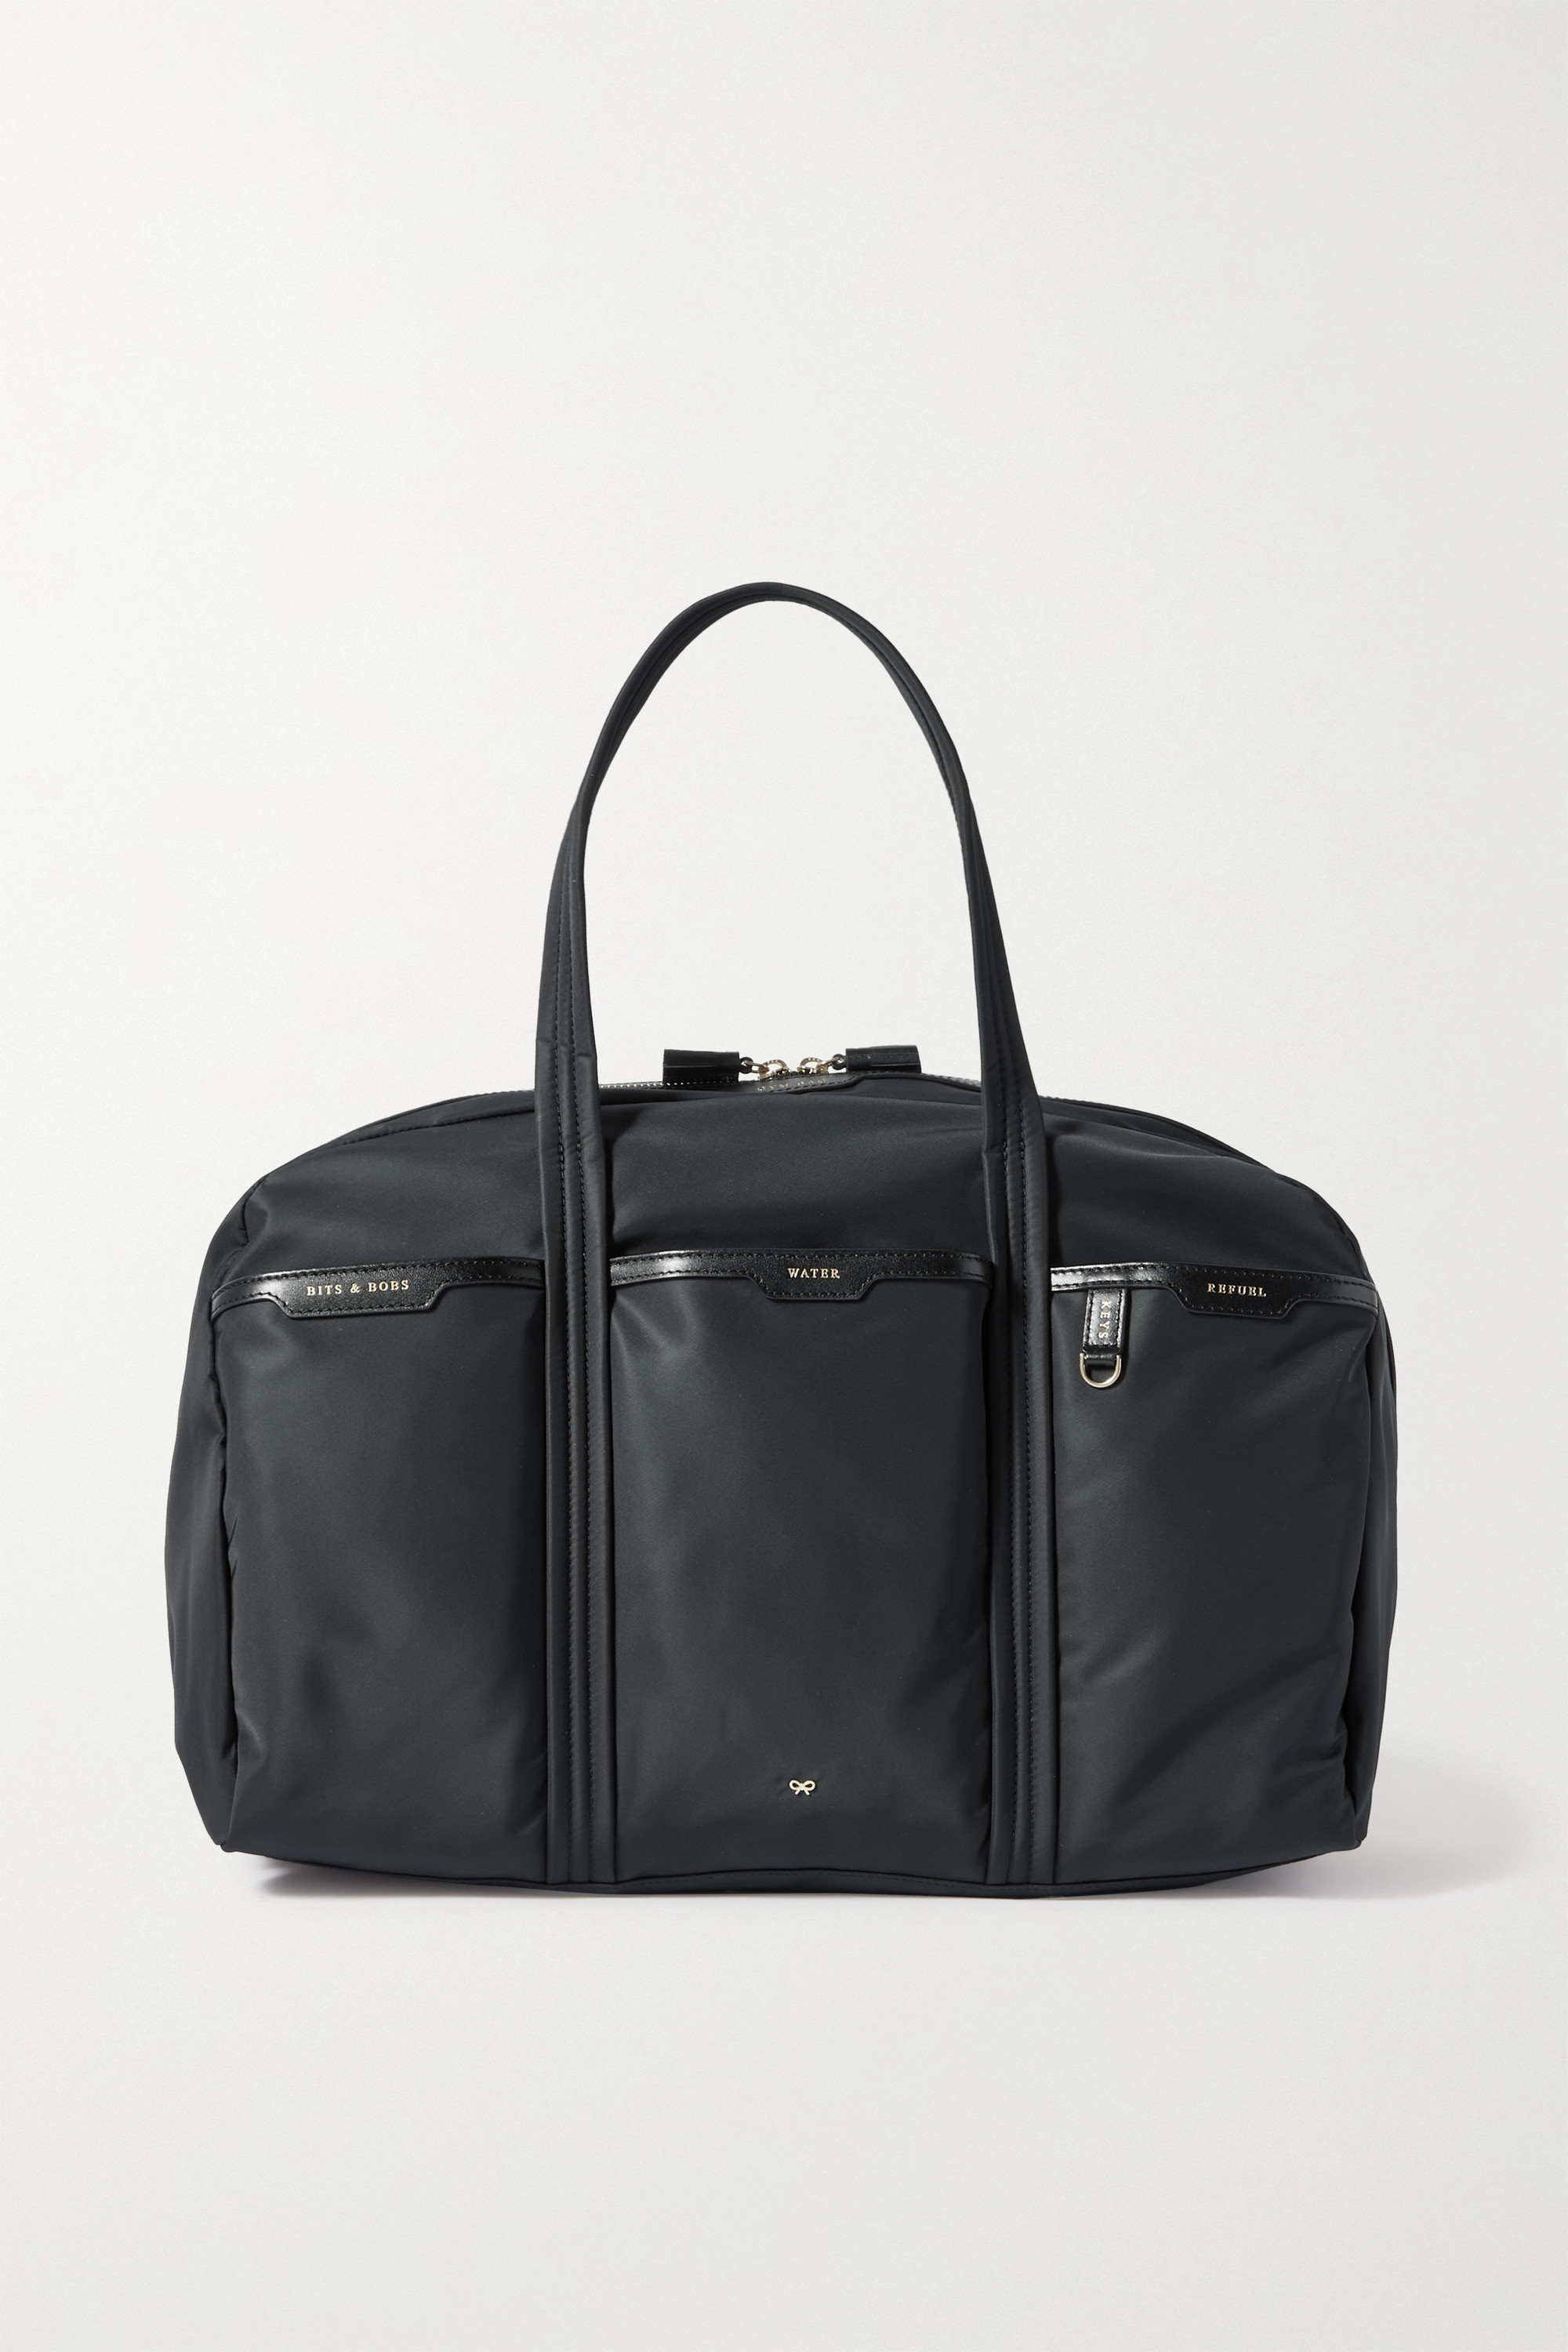 Anya Hindmarch - Gym leather-trimmed recycled shell tote